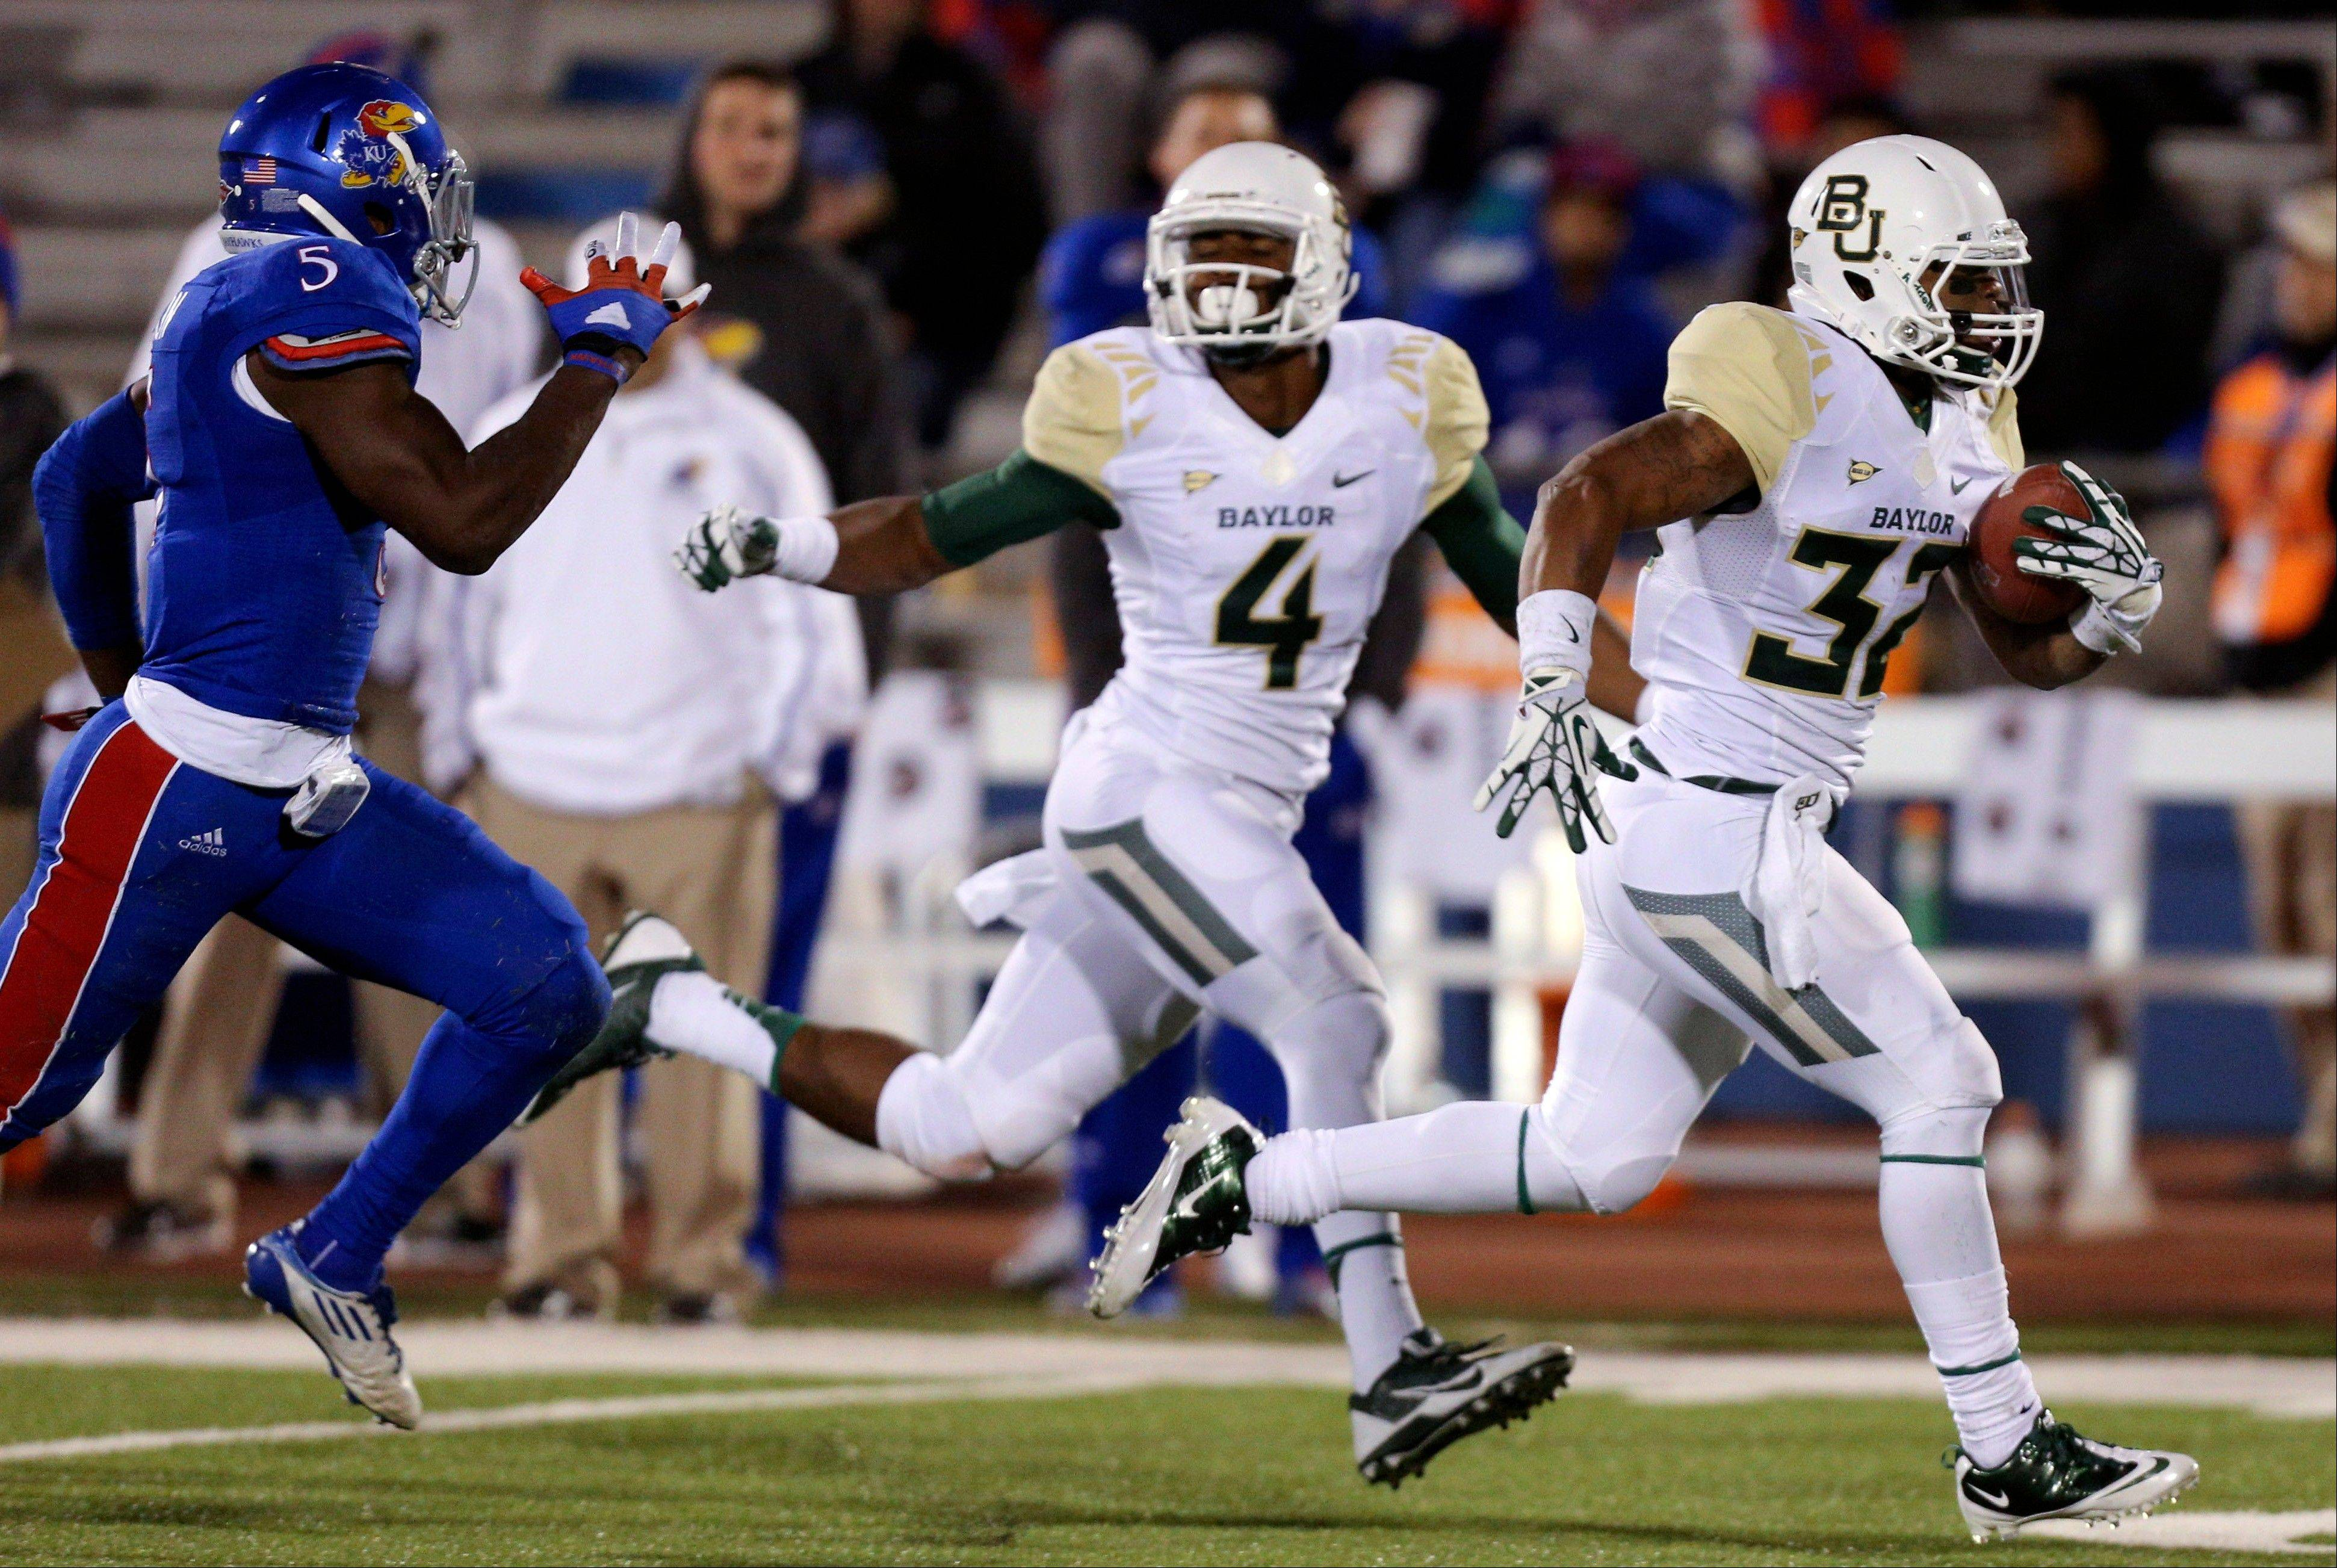 Baylor Bears running back Shock Linwood (32) runs past Kansas Jayhawks safety Isaiah Johnson (5) for a touchdown run in the fourth quarter of an NCAA college football game Saturday in Lawrence, Kan. Baylor won 59-14.